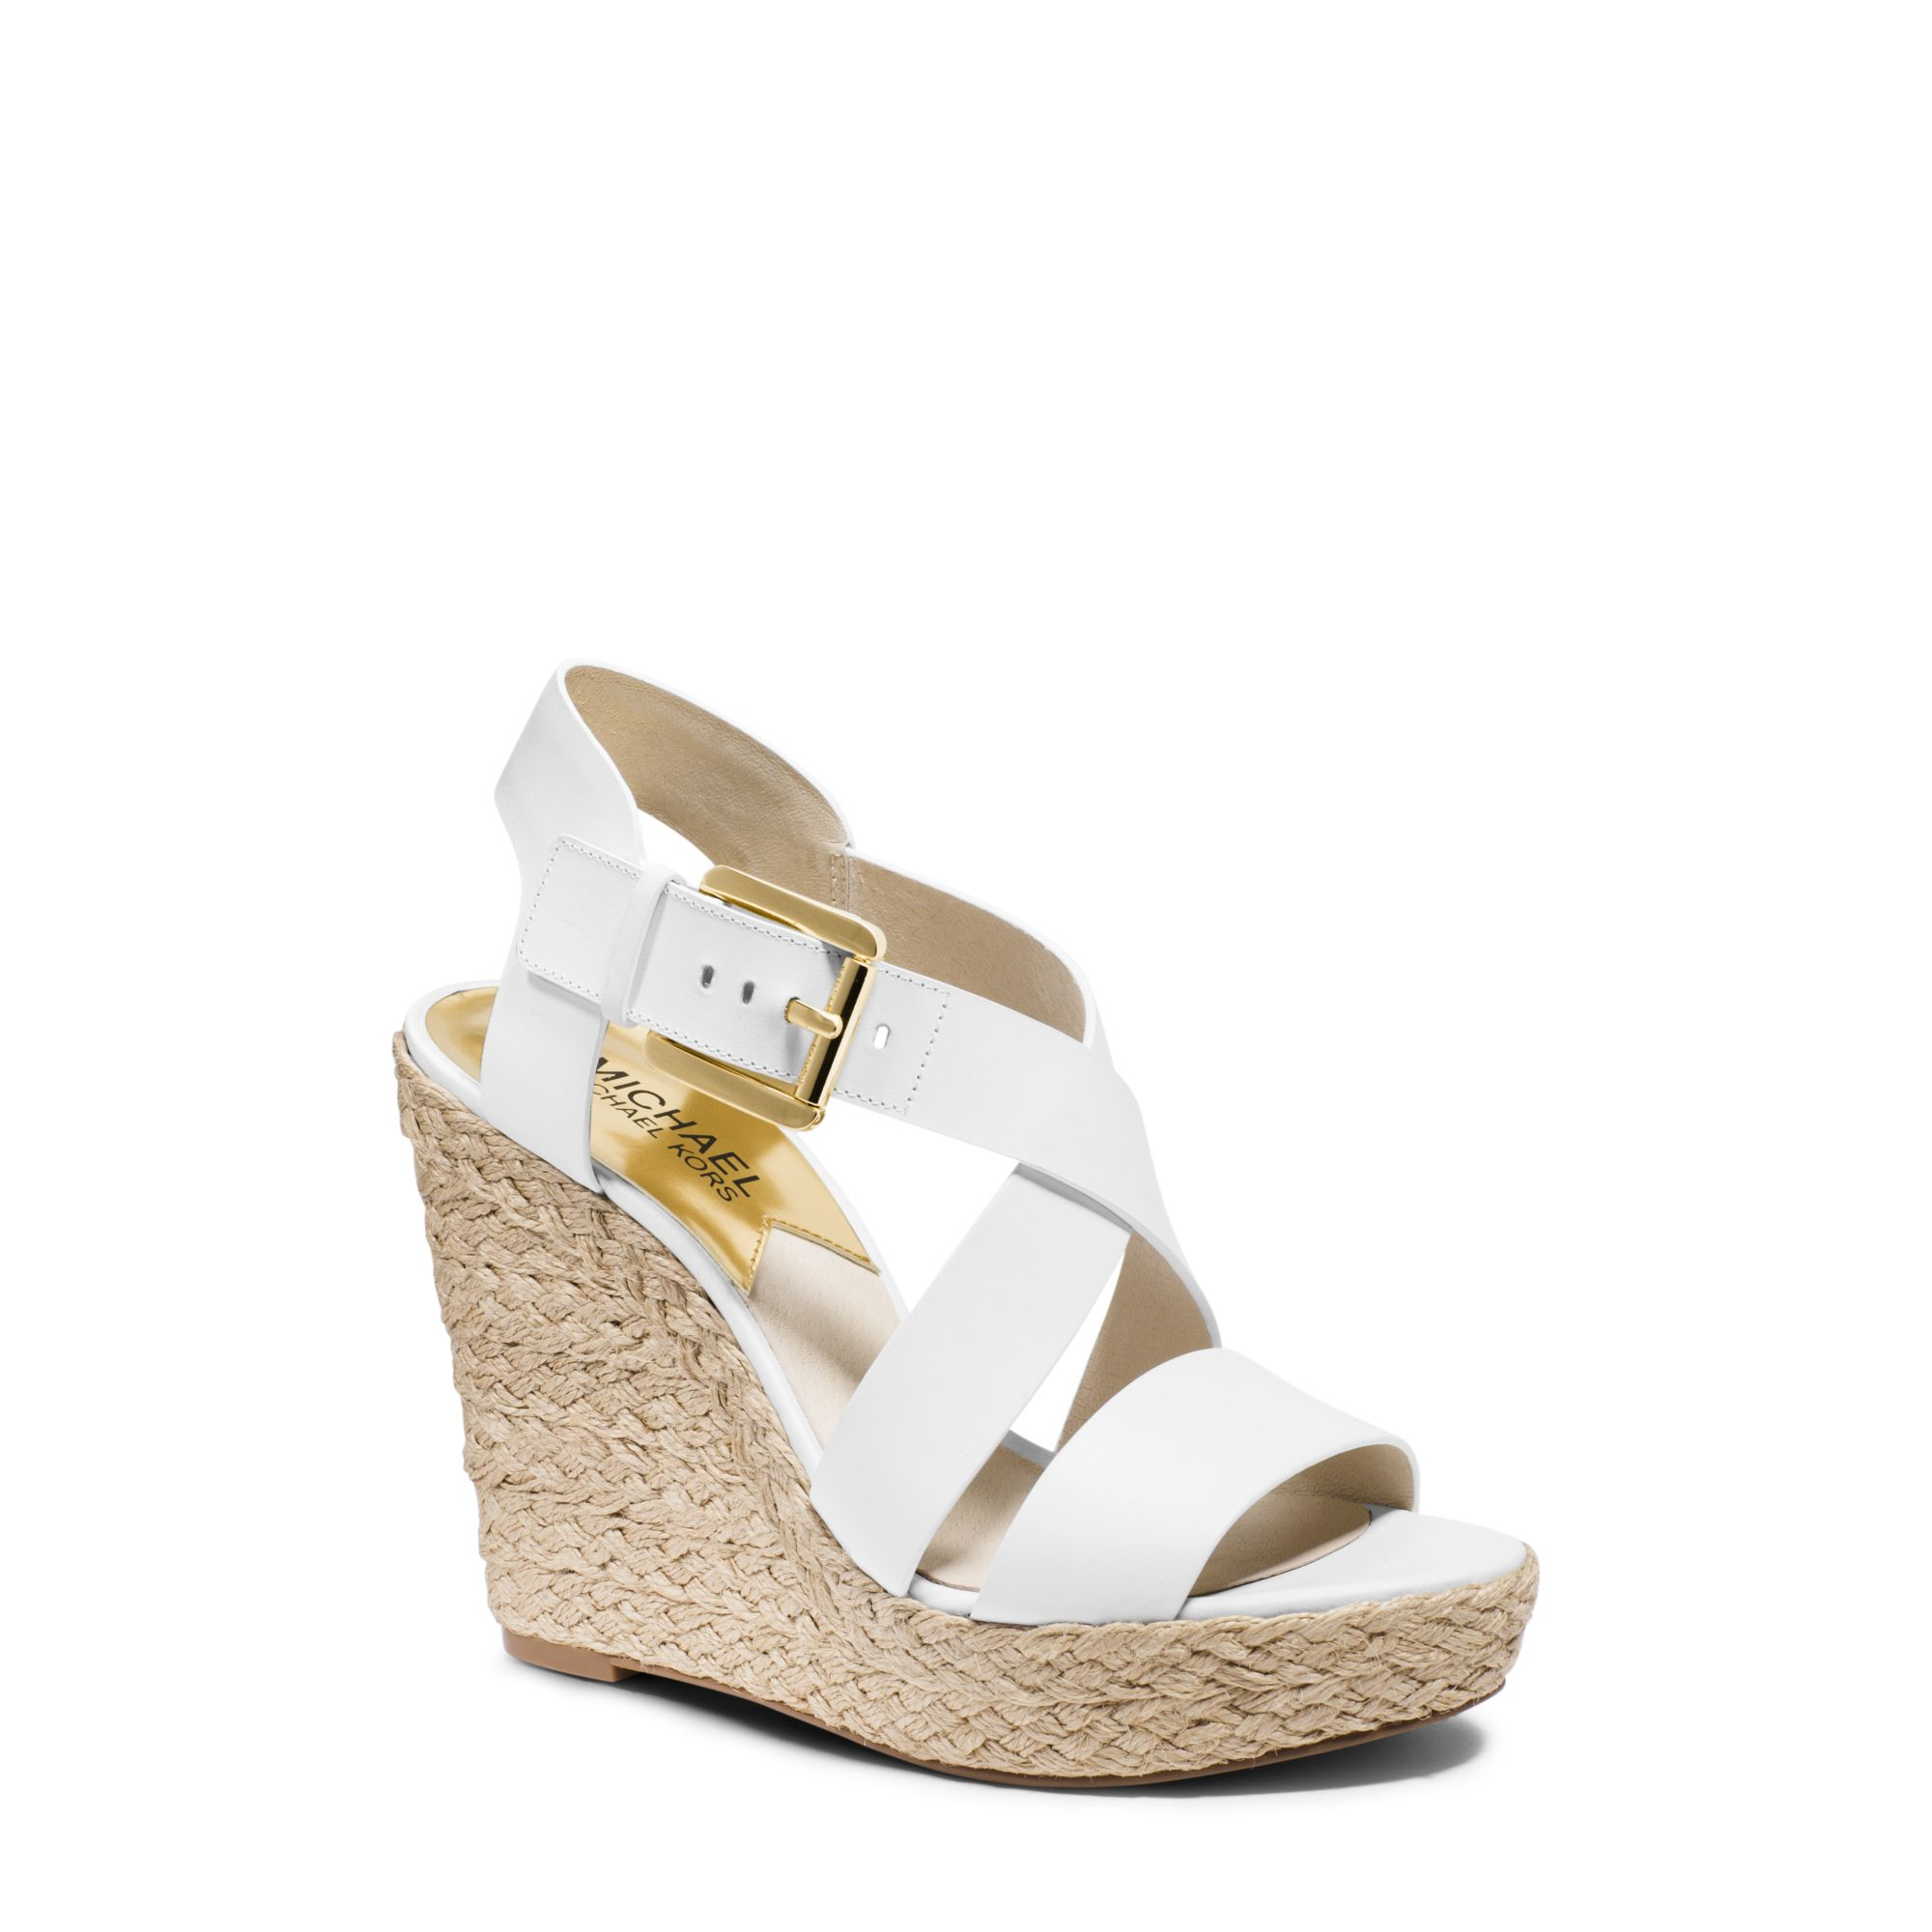 aa60ac629a4 Lyst - Michael Kors Giovanna Leather Espadrille Wedge Sandal in White